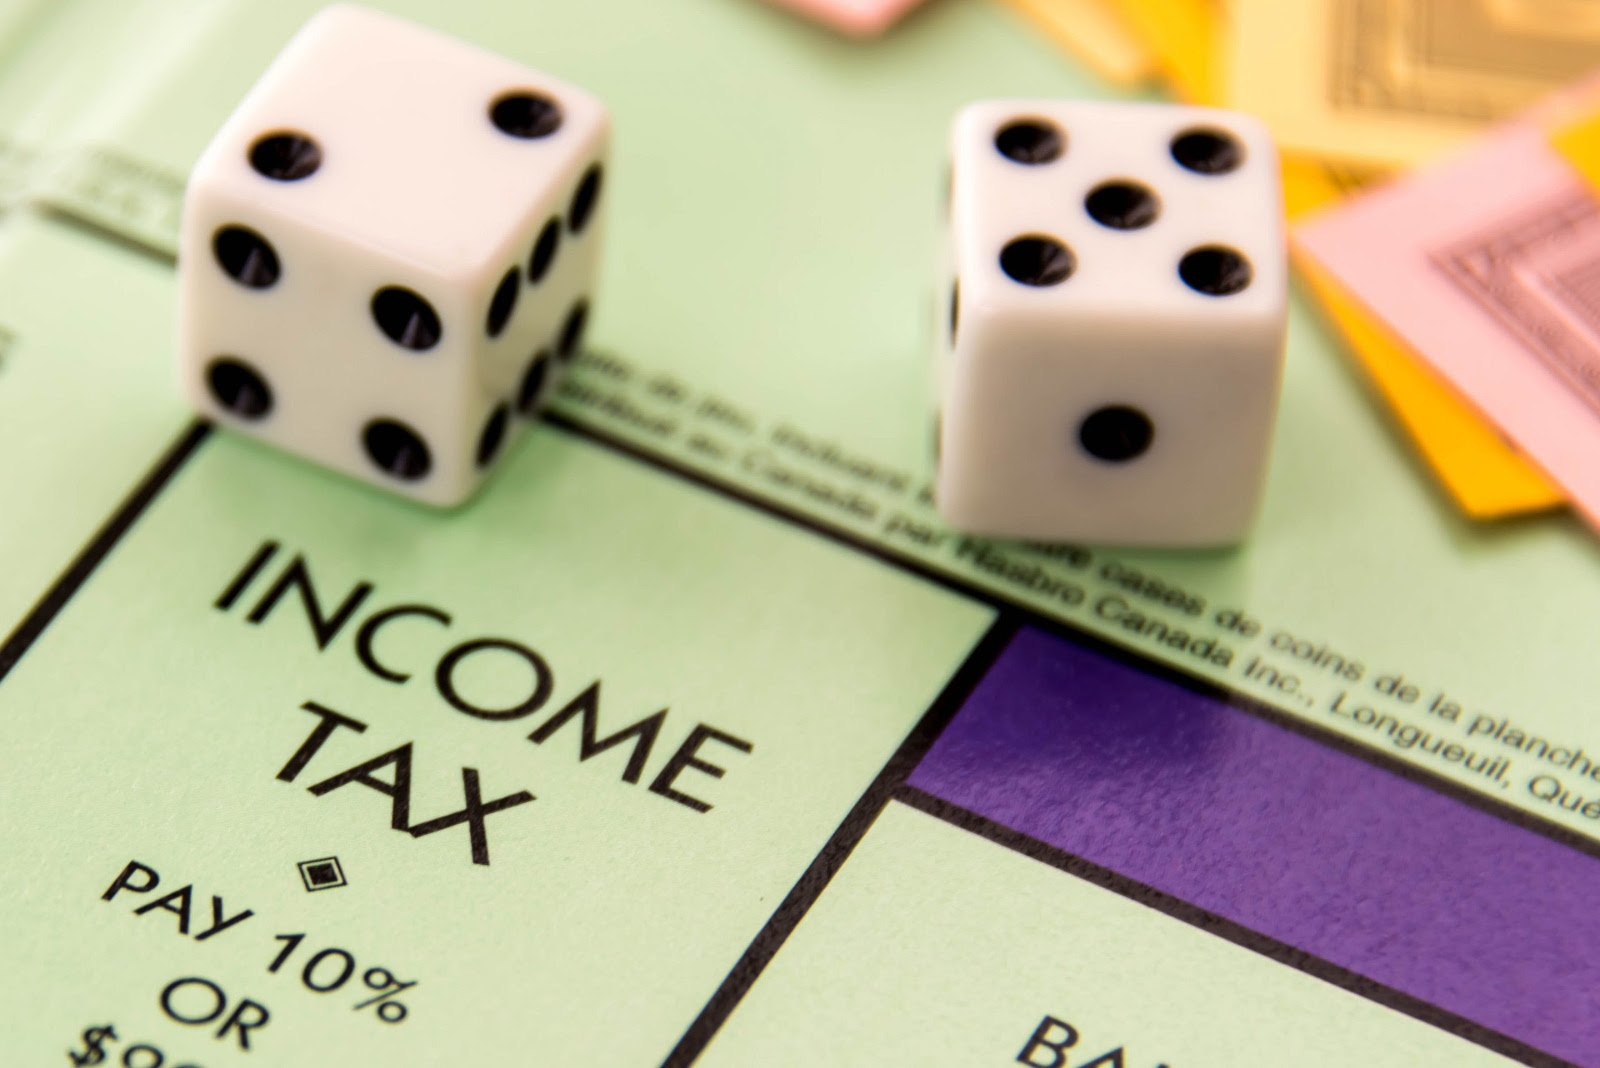 While paying taxes is inevitable, multifamily syndication investors can take advantage of depreciation, cost segregation analysis, and various deductions in order to minimize the impact of taxation on their return, and use cash out refinancing and 1031 exchanges to grow their profits tax free over time.